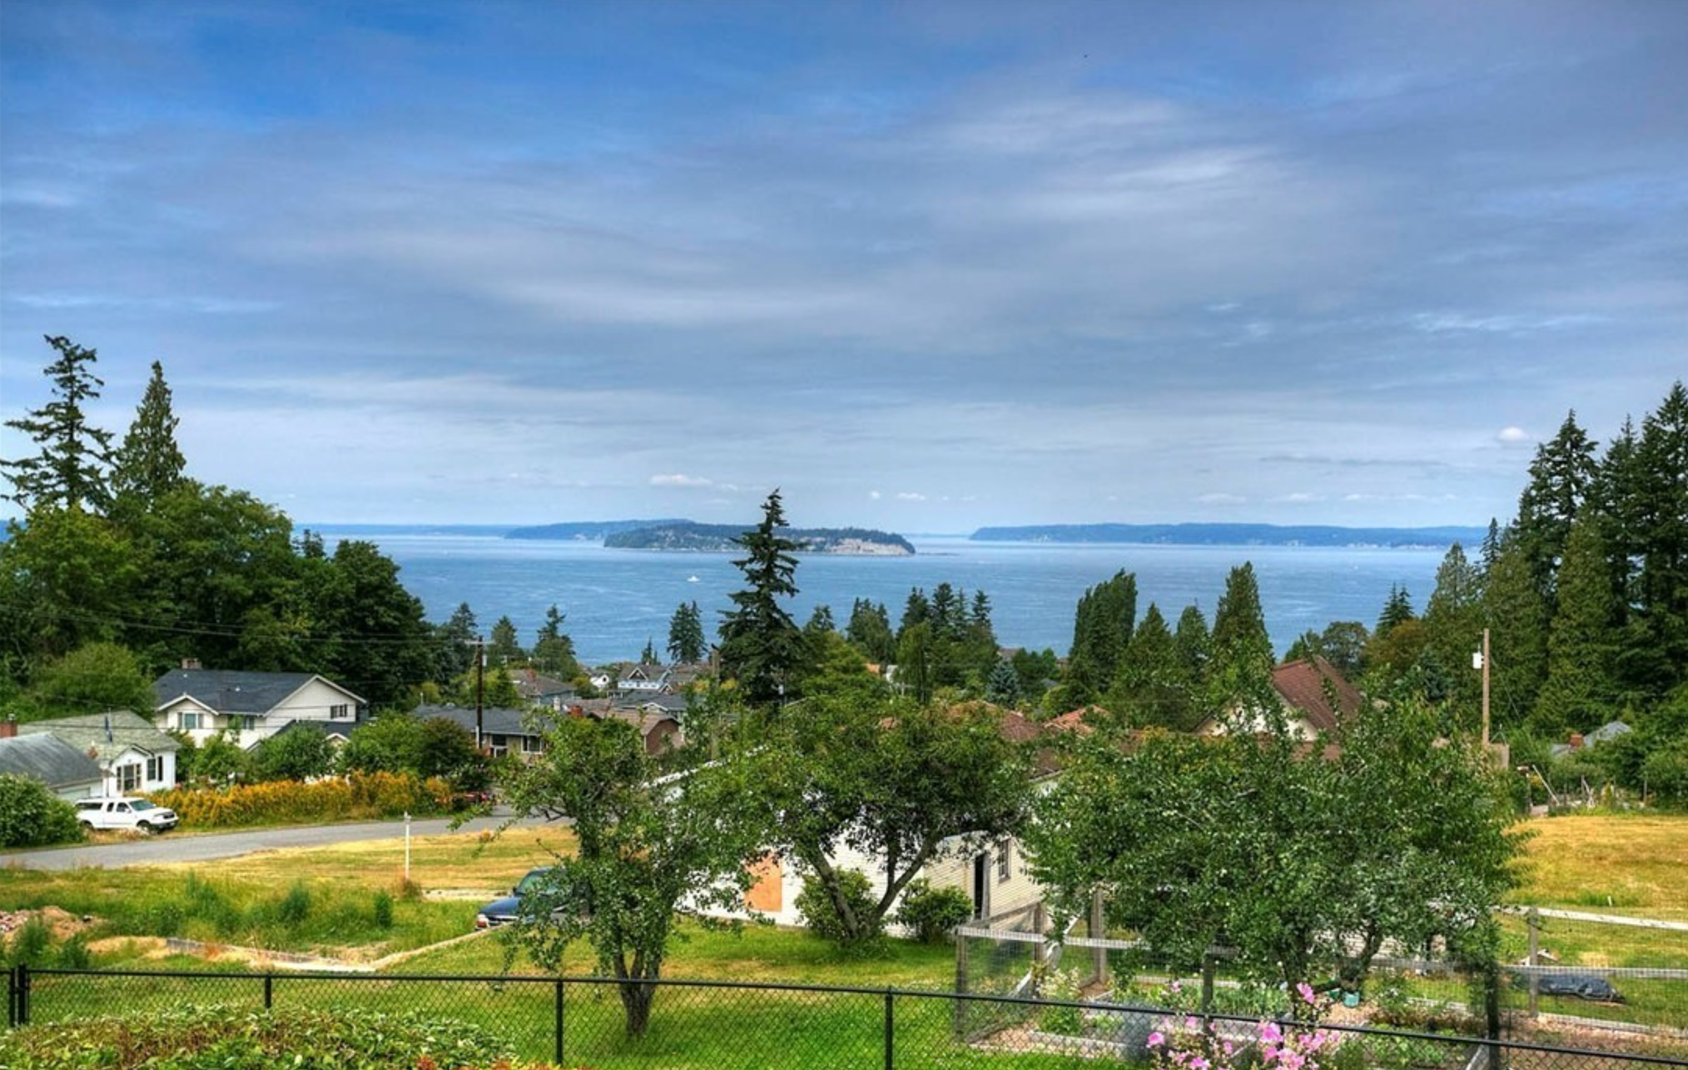 Mukilteo Blvd - Recently Sold Homes